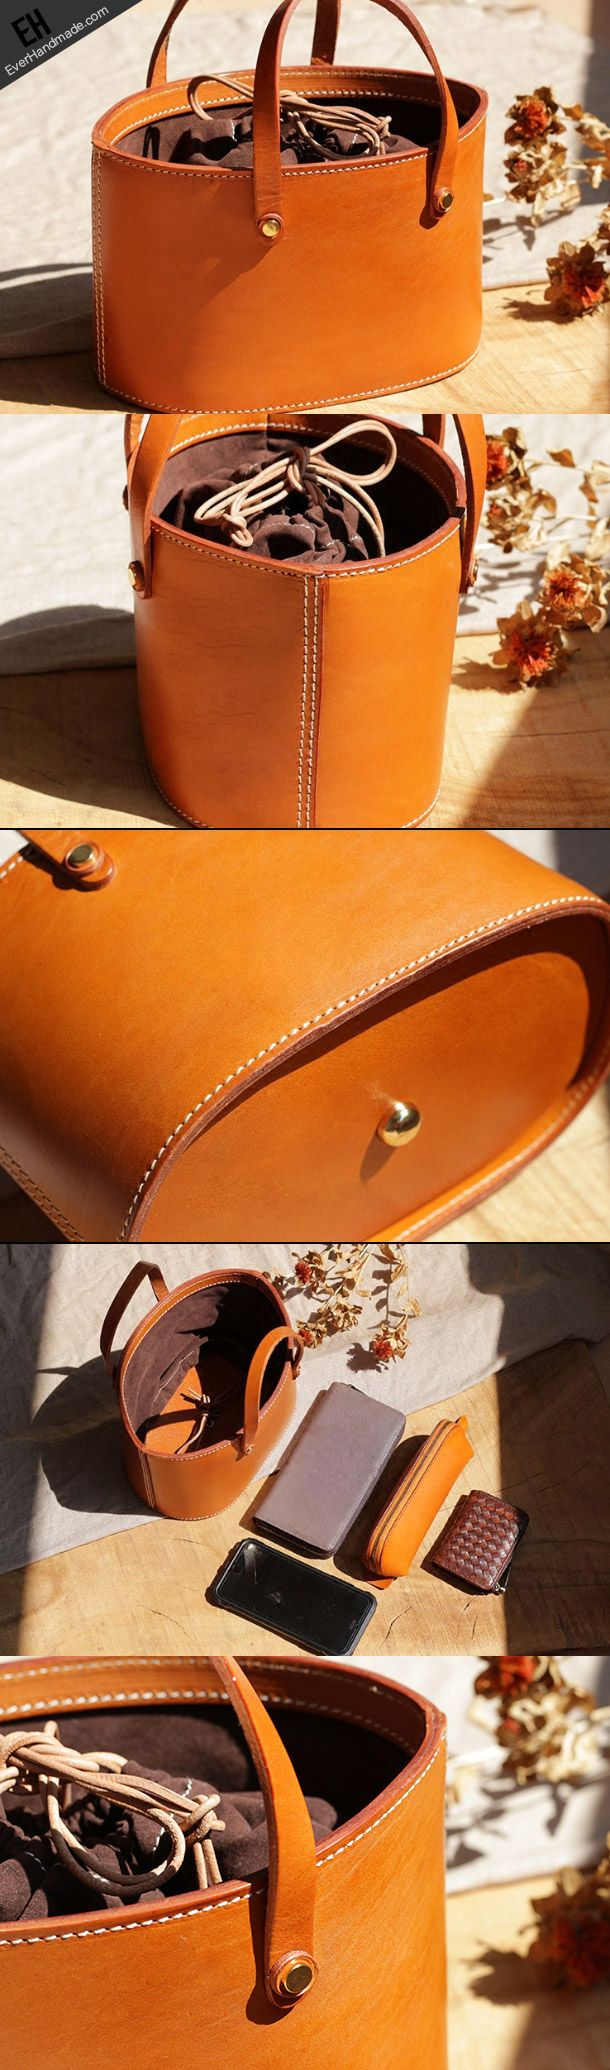 Handmade Leather bucket bag shopper bag for women leather